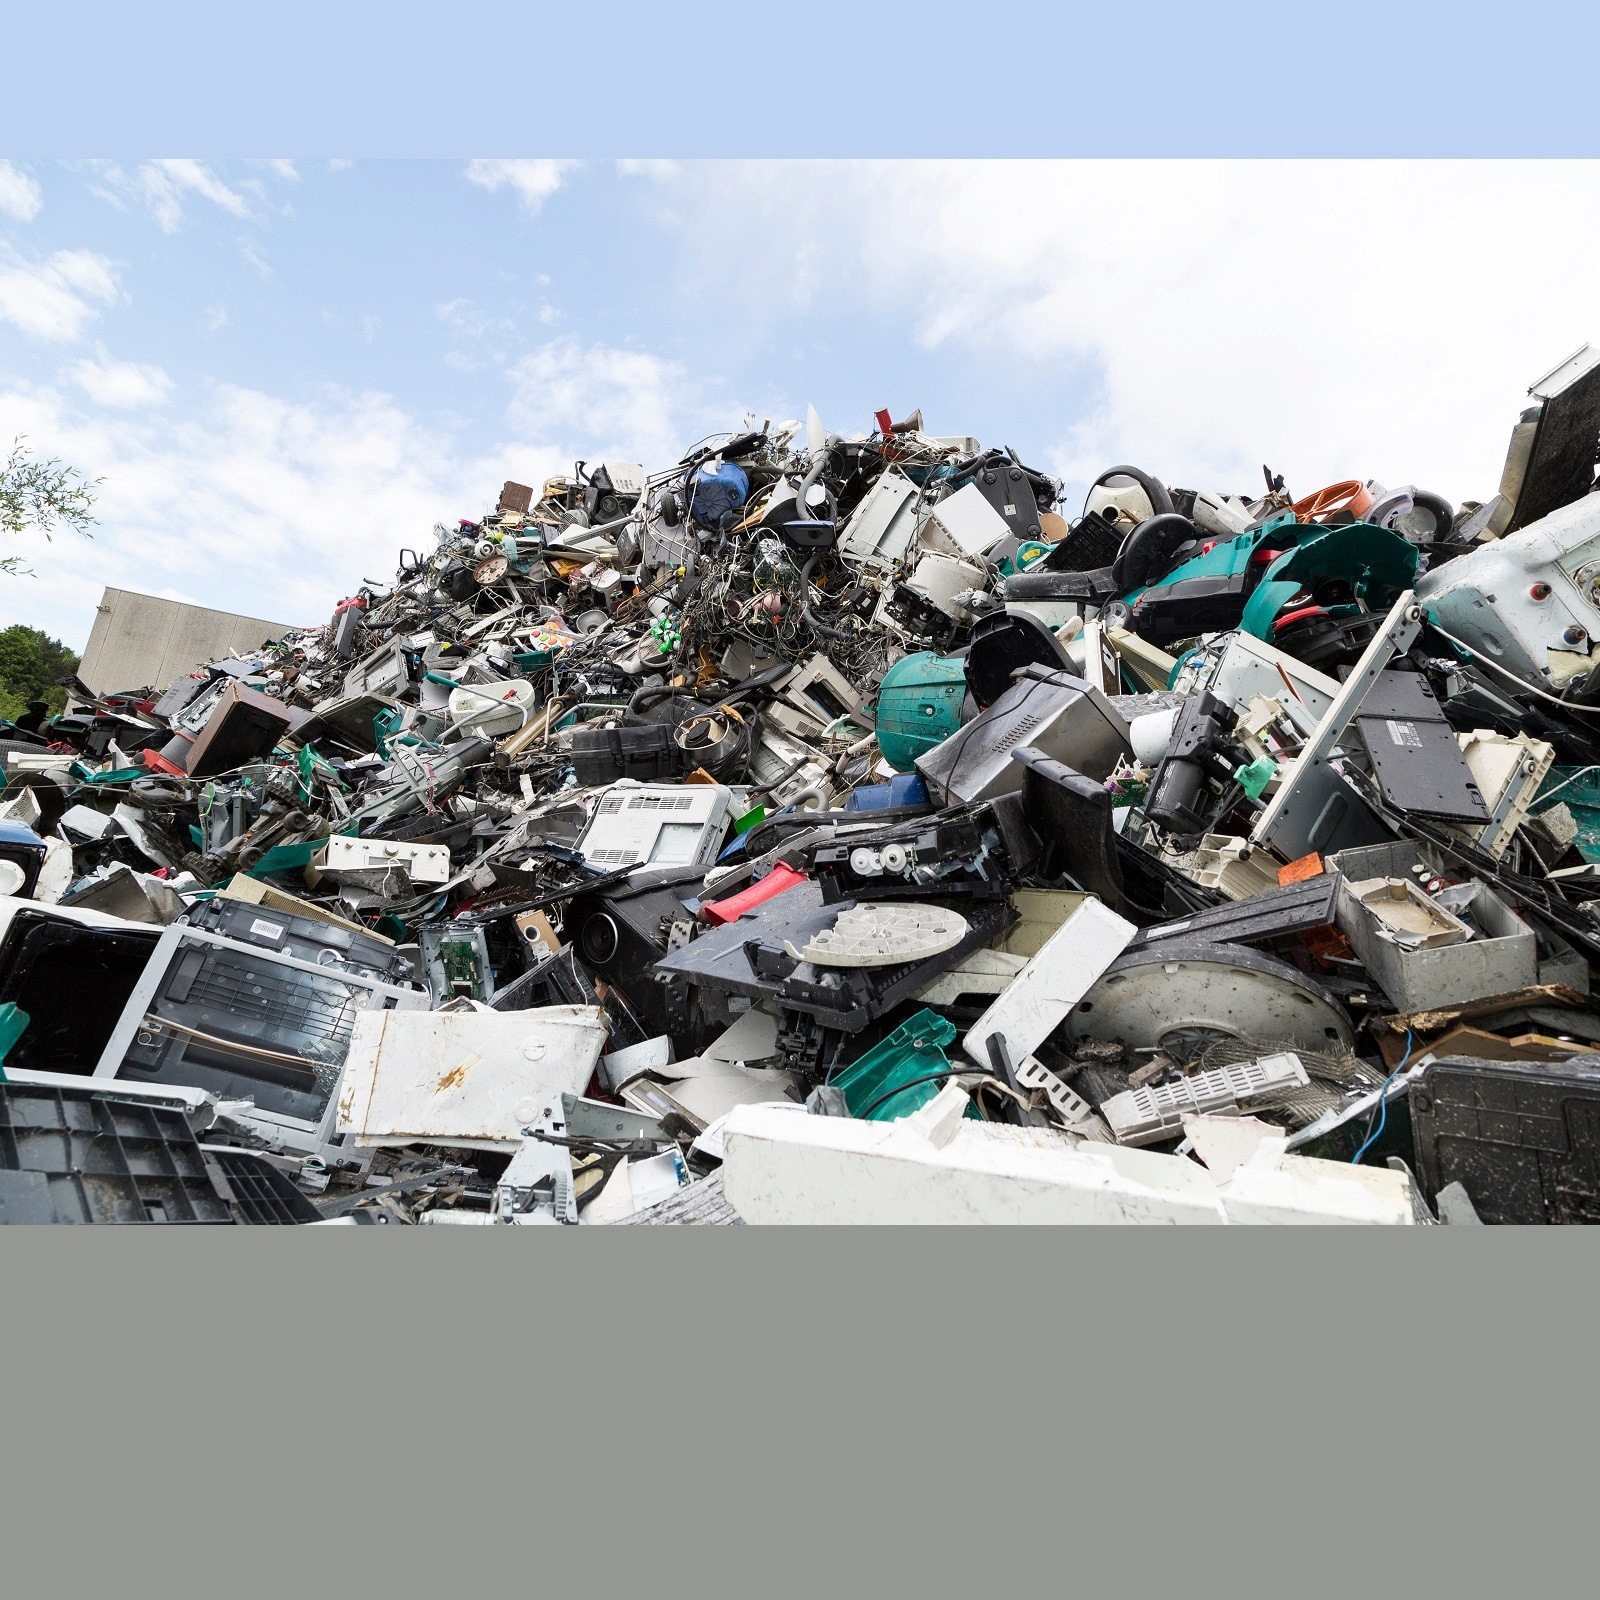 Science, Research, Environment, Waste, E-Waste, E Waste, E Waste Management, Waste Management, Reuse, Recycle, Repair,